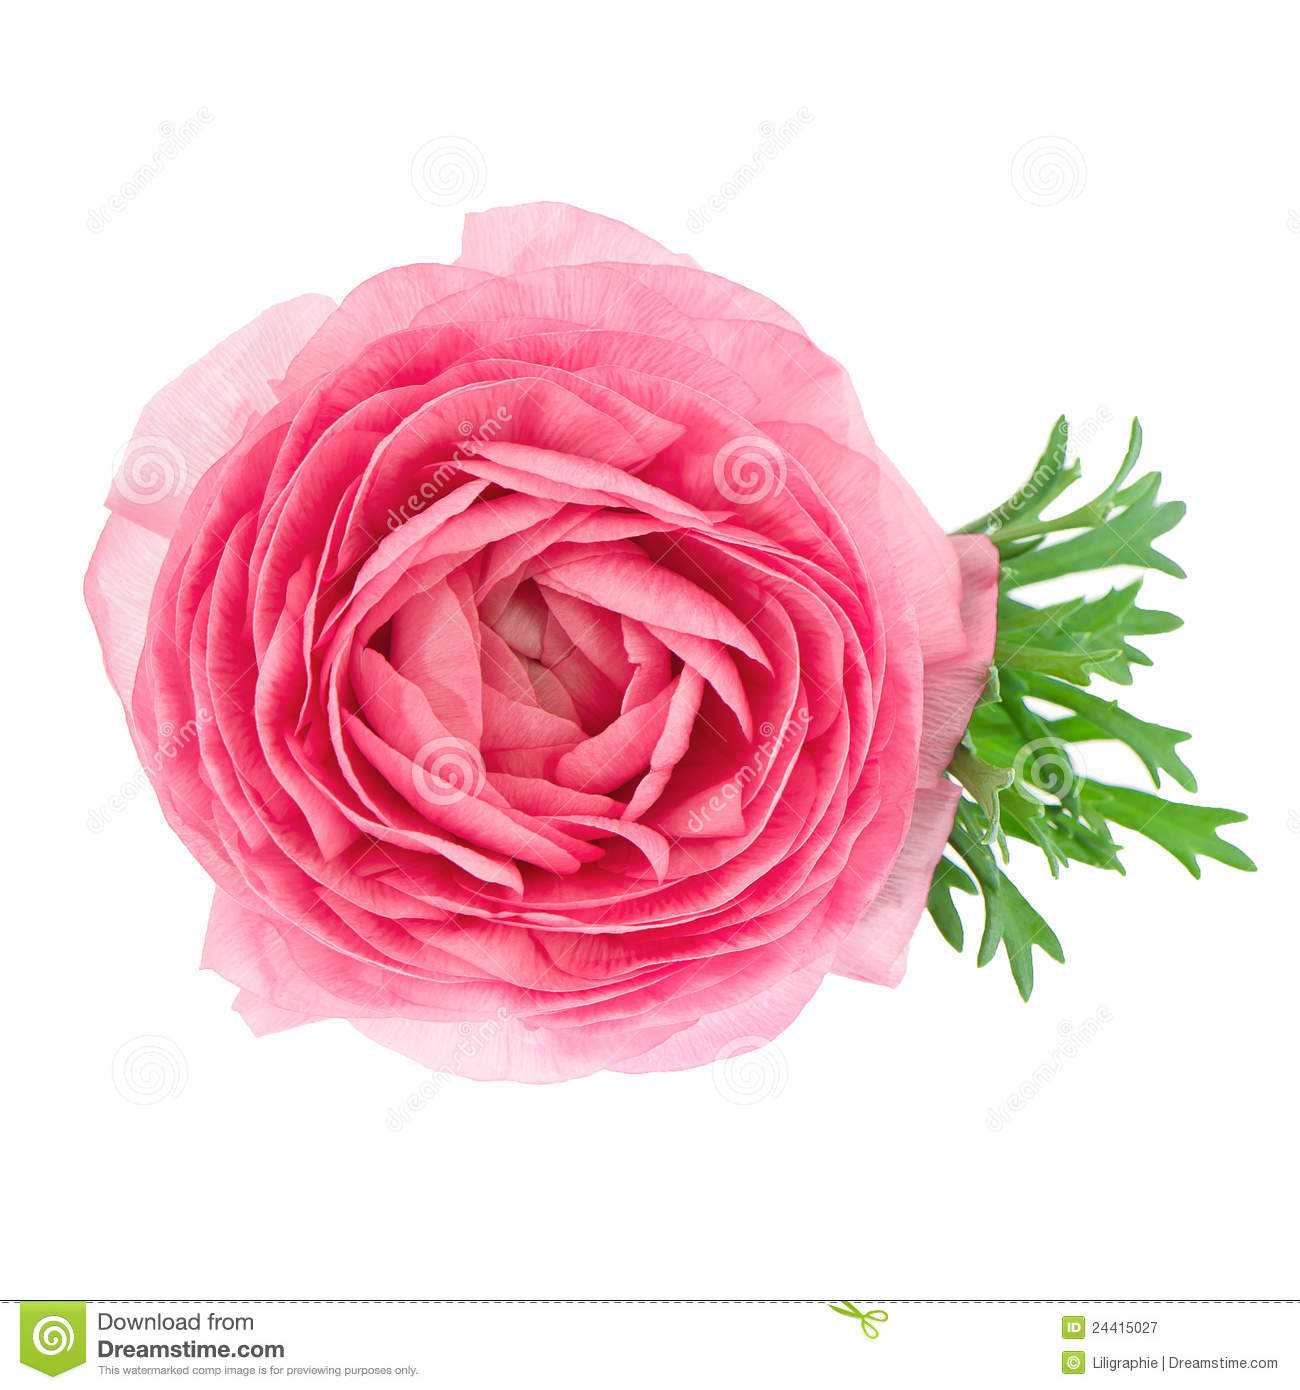 Flower arrangement stock photography Add Text Watermark for Your Photo - Watermark Software